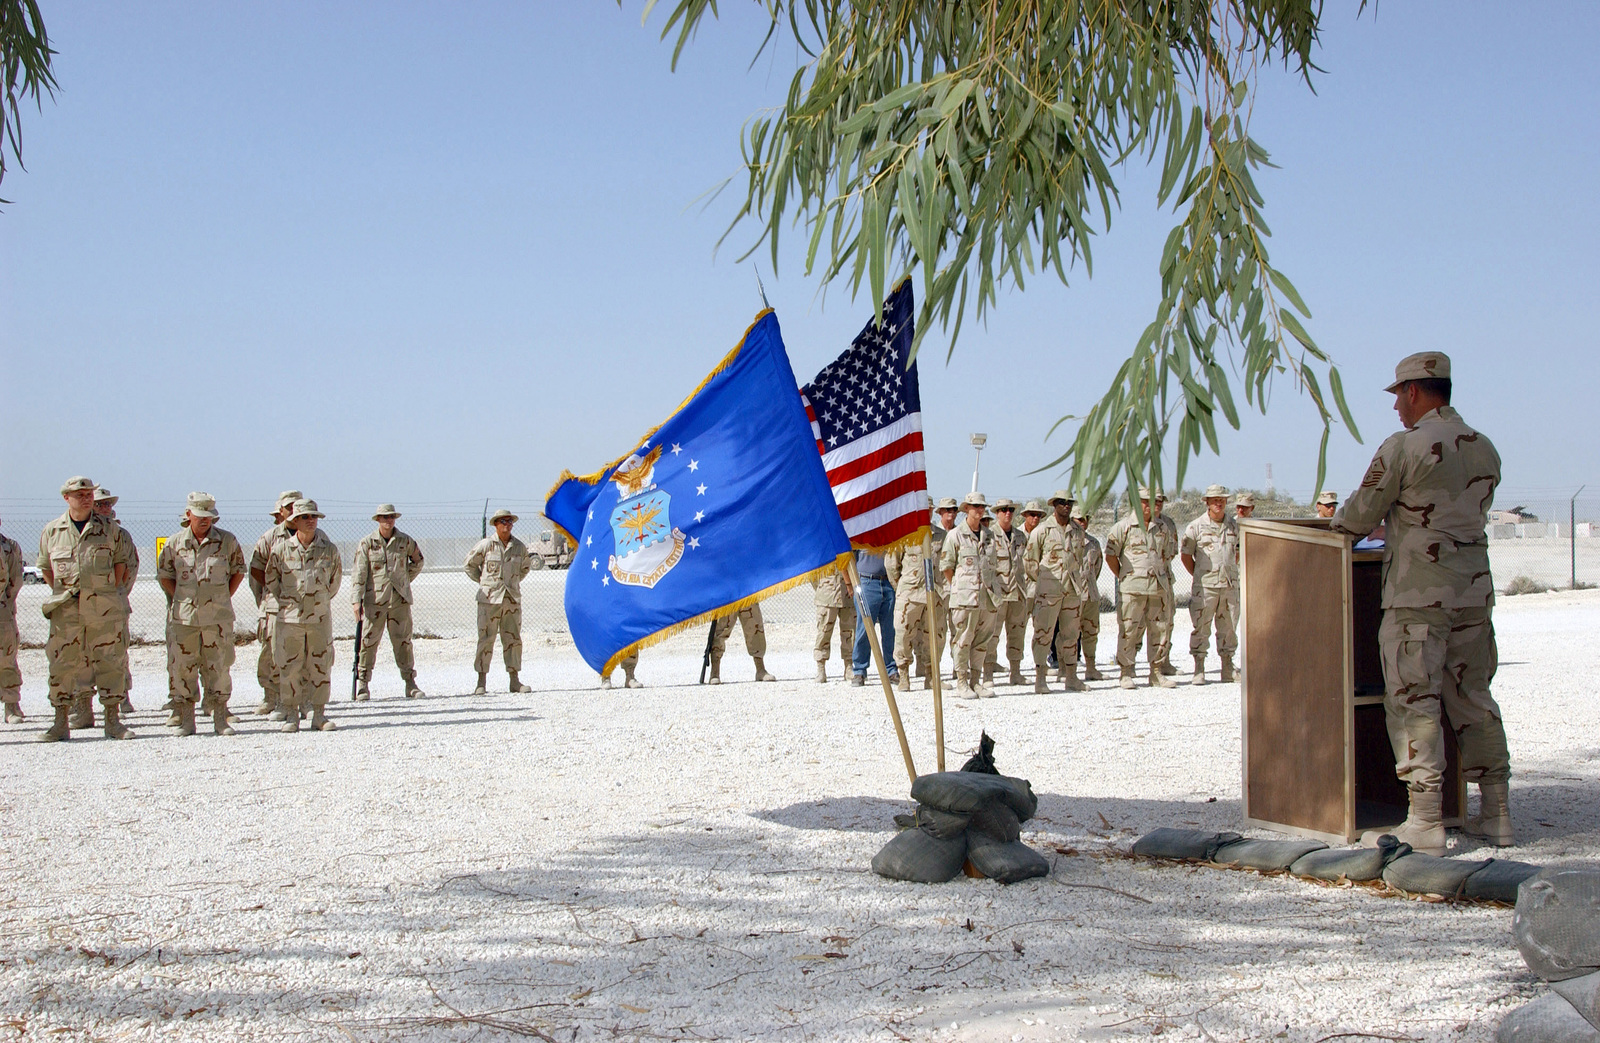 US Air Force (USAF) MASTER Sergeant (MSGT) Thomas Tezel, First Sergeant for the 384th Air Expeditionary Group (AEG), speaks during a Memorial Day Service for members of the 438th AEG deployed at an undisclosed location during Operation ENDURING FREEDOM